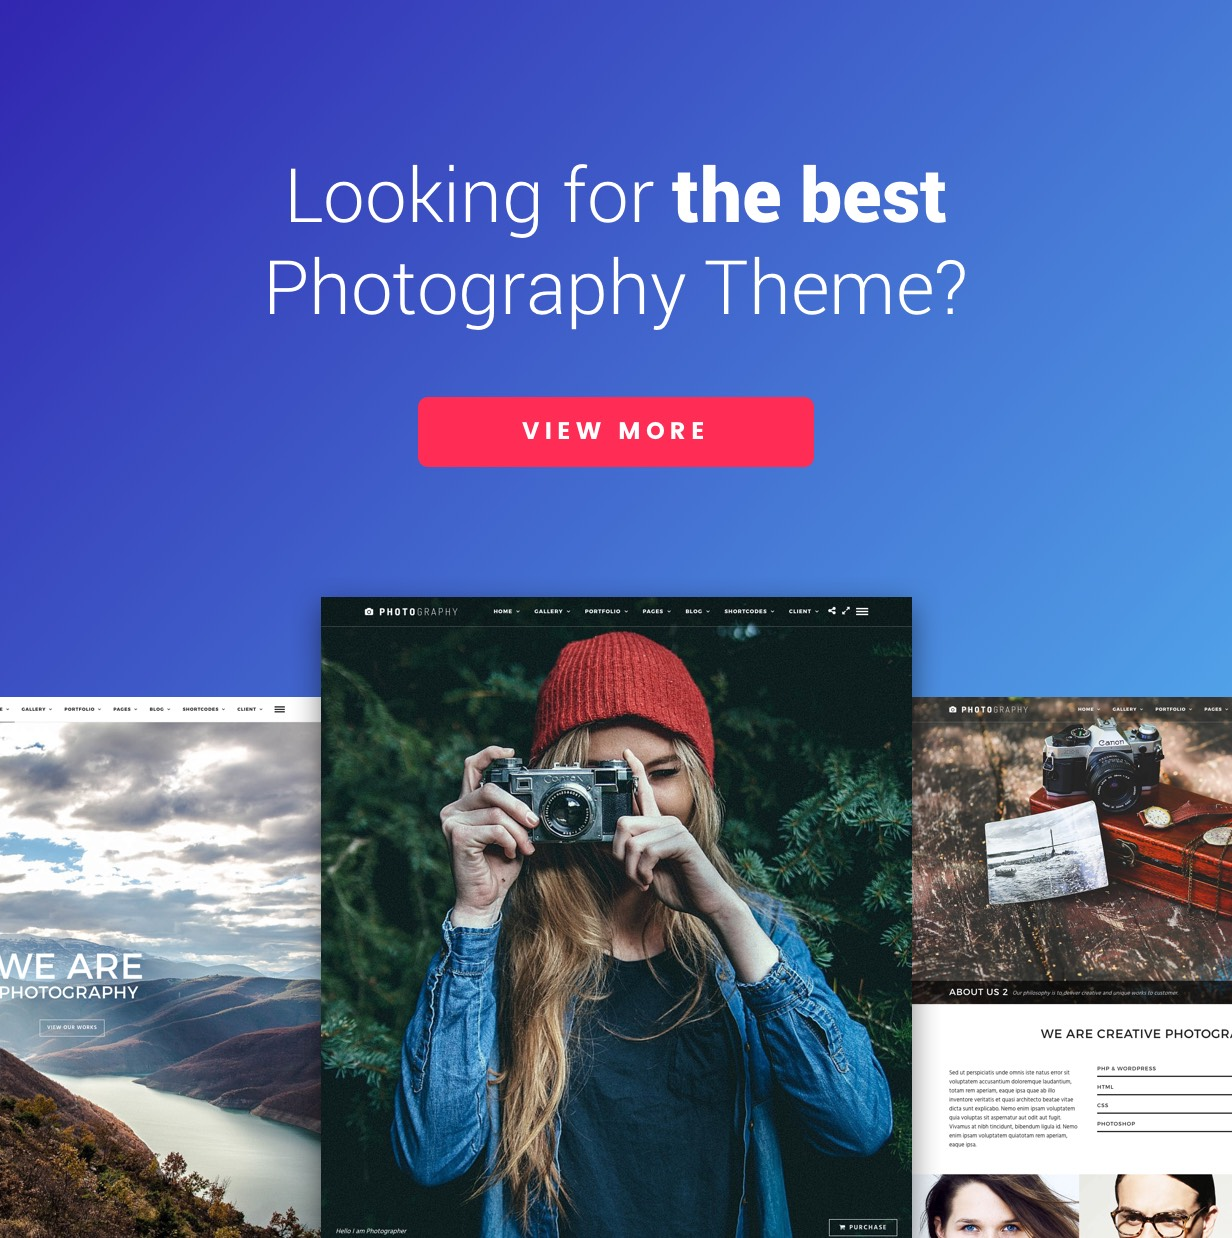 Themeforest | Titan | Photography Free Download free download Themeforest | Titan | Photography Free Download nulled Themeforest | Titan | Photography Free Download